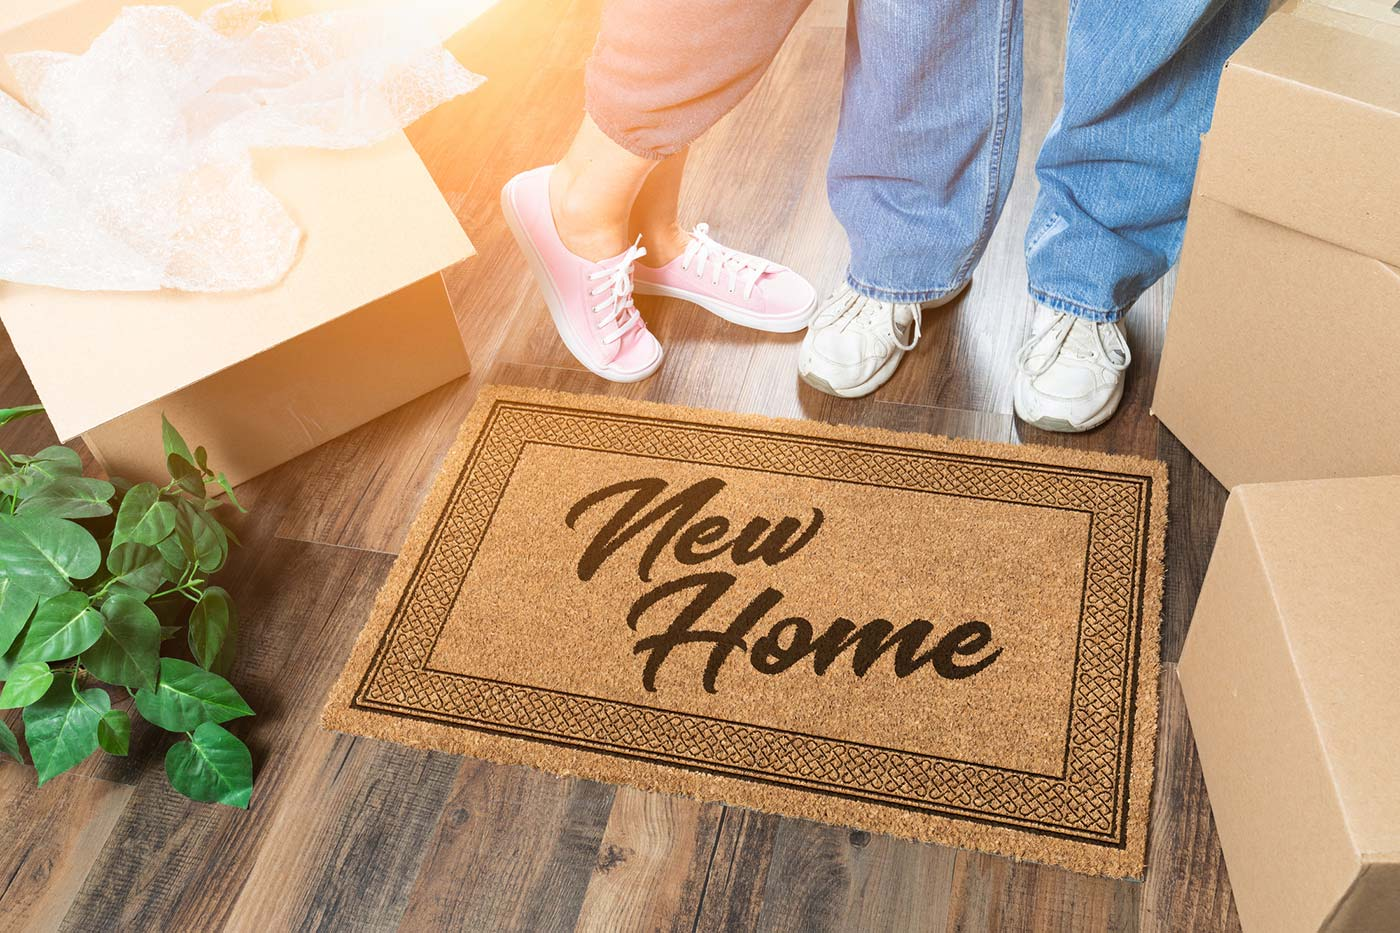 A couple standing next to a New Home welcome mat and moving boxes after receiving thorough home inspection services